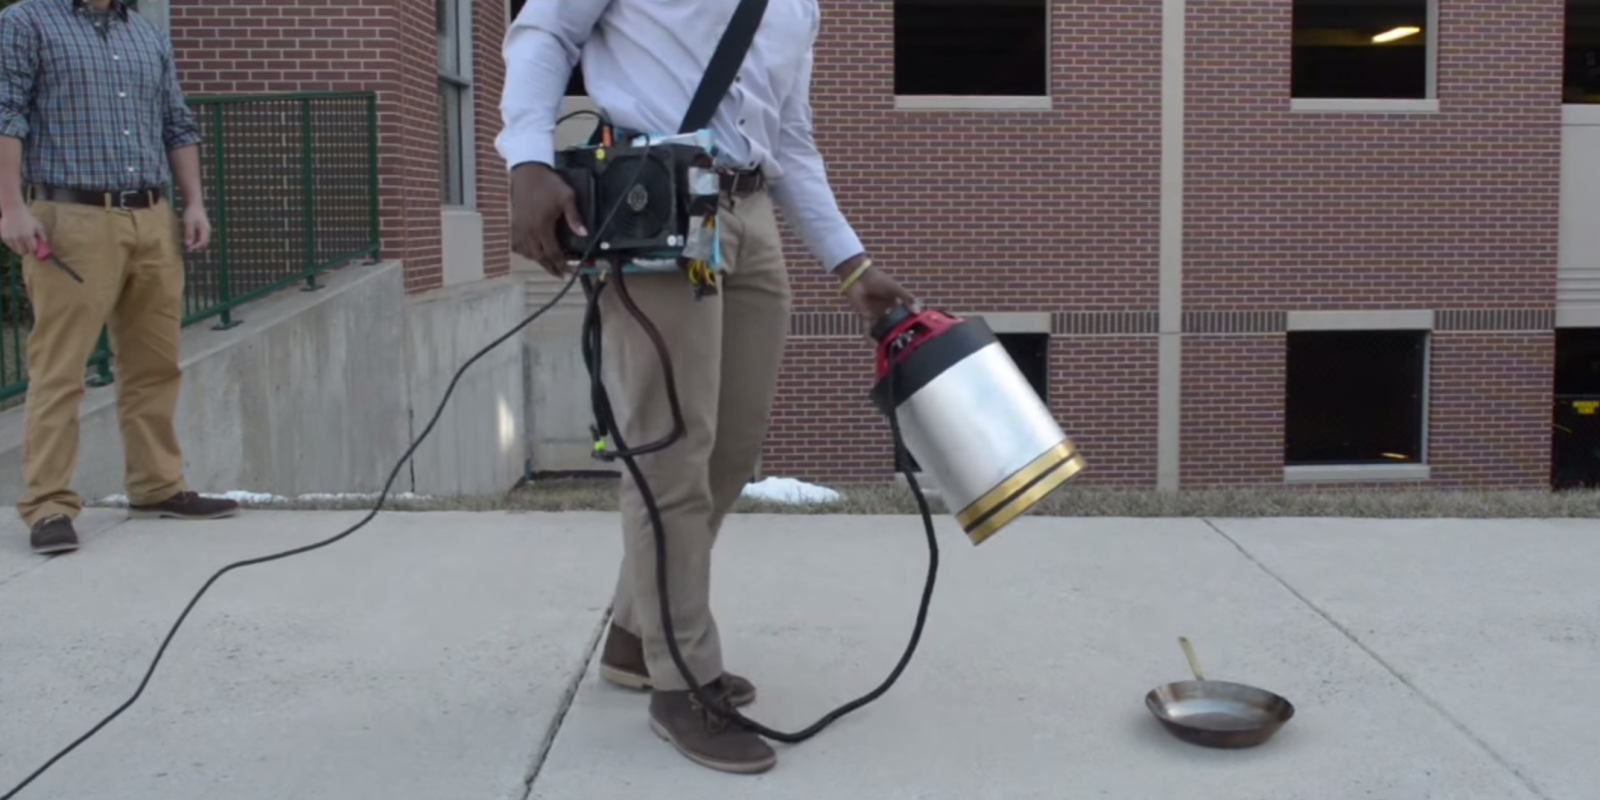 Sonic Firefighter Extinguishes Flames Using Only Sound